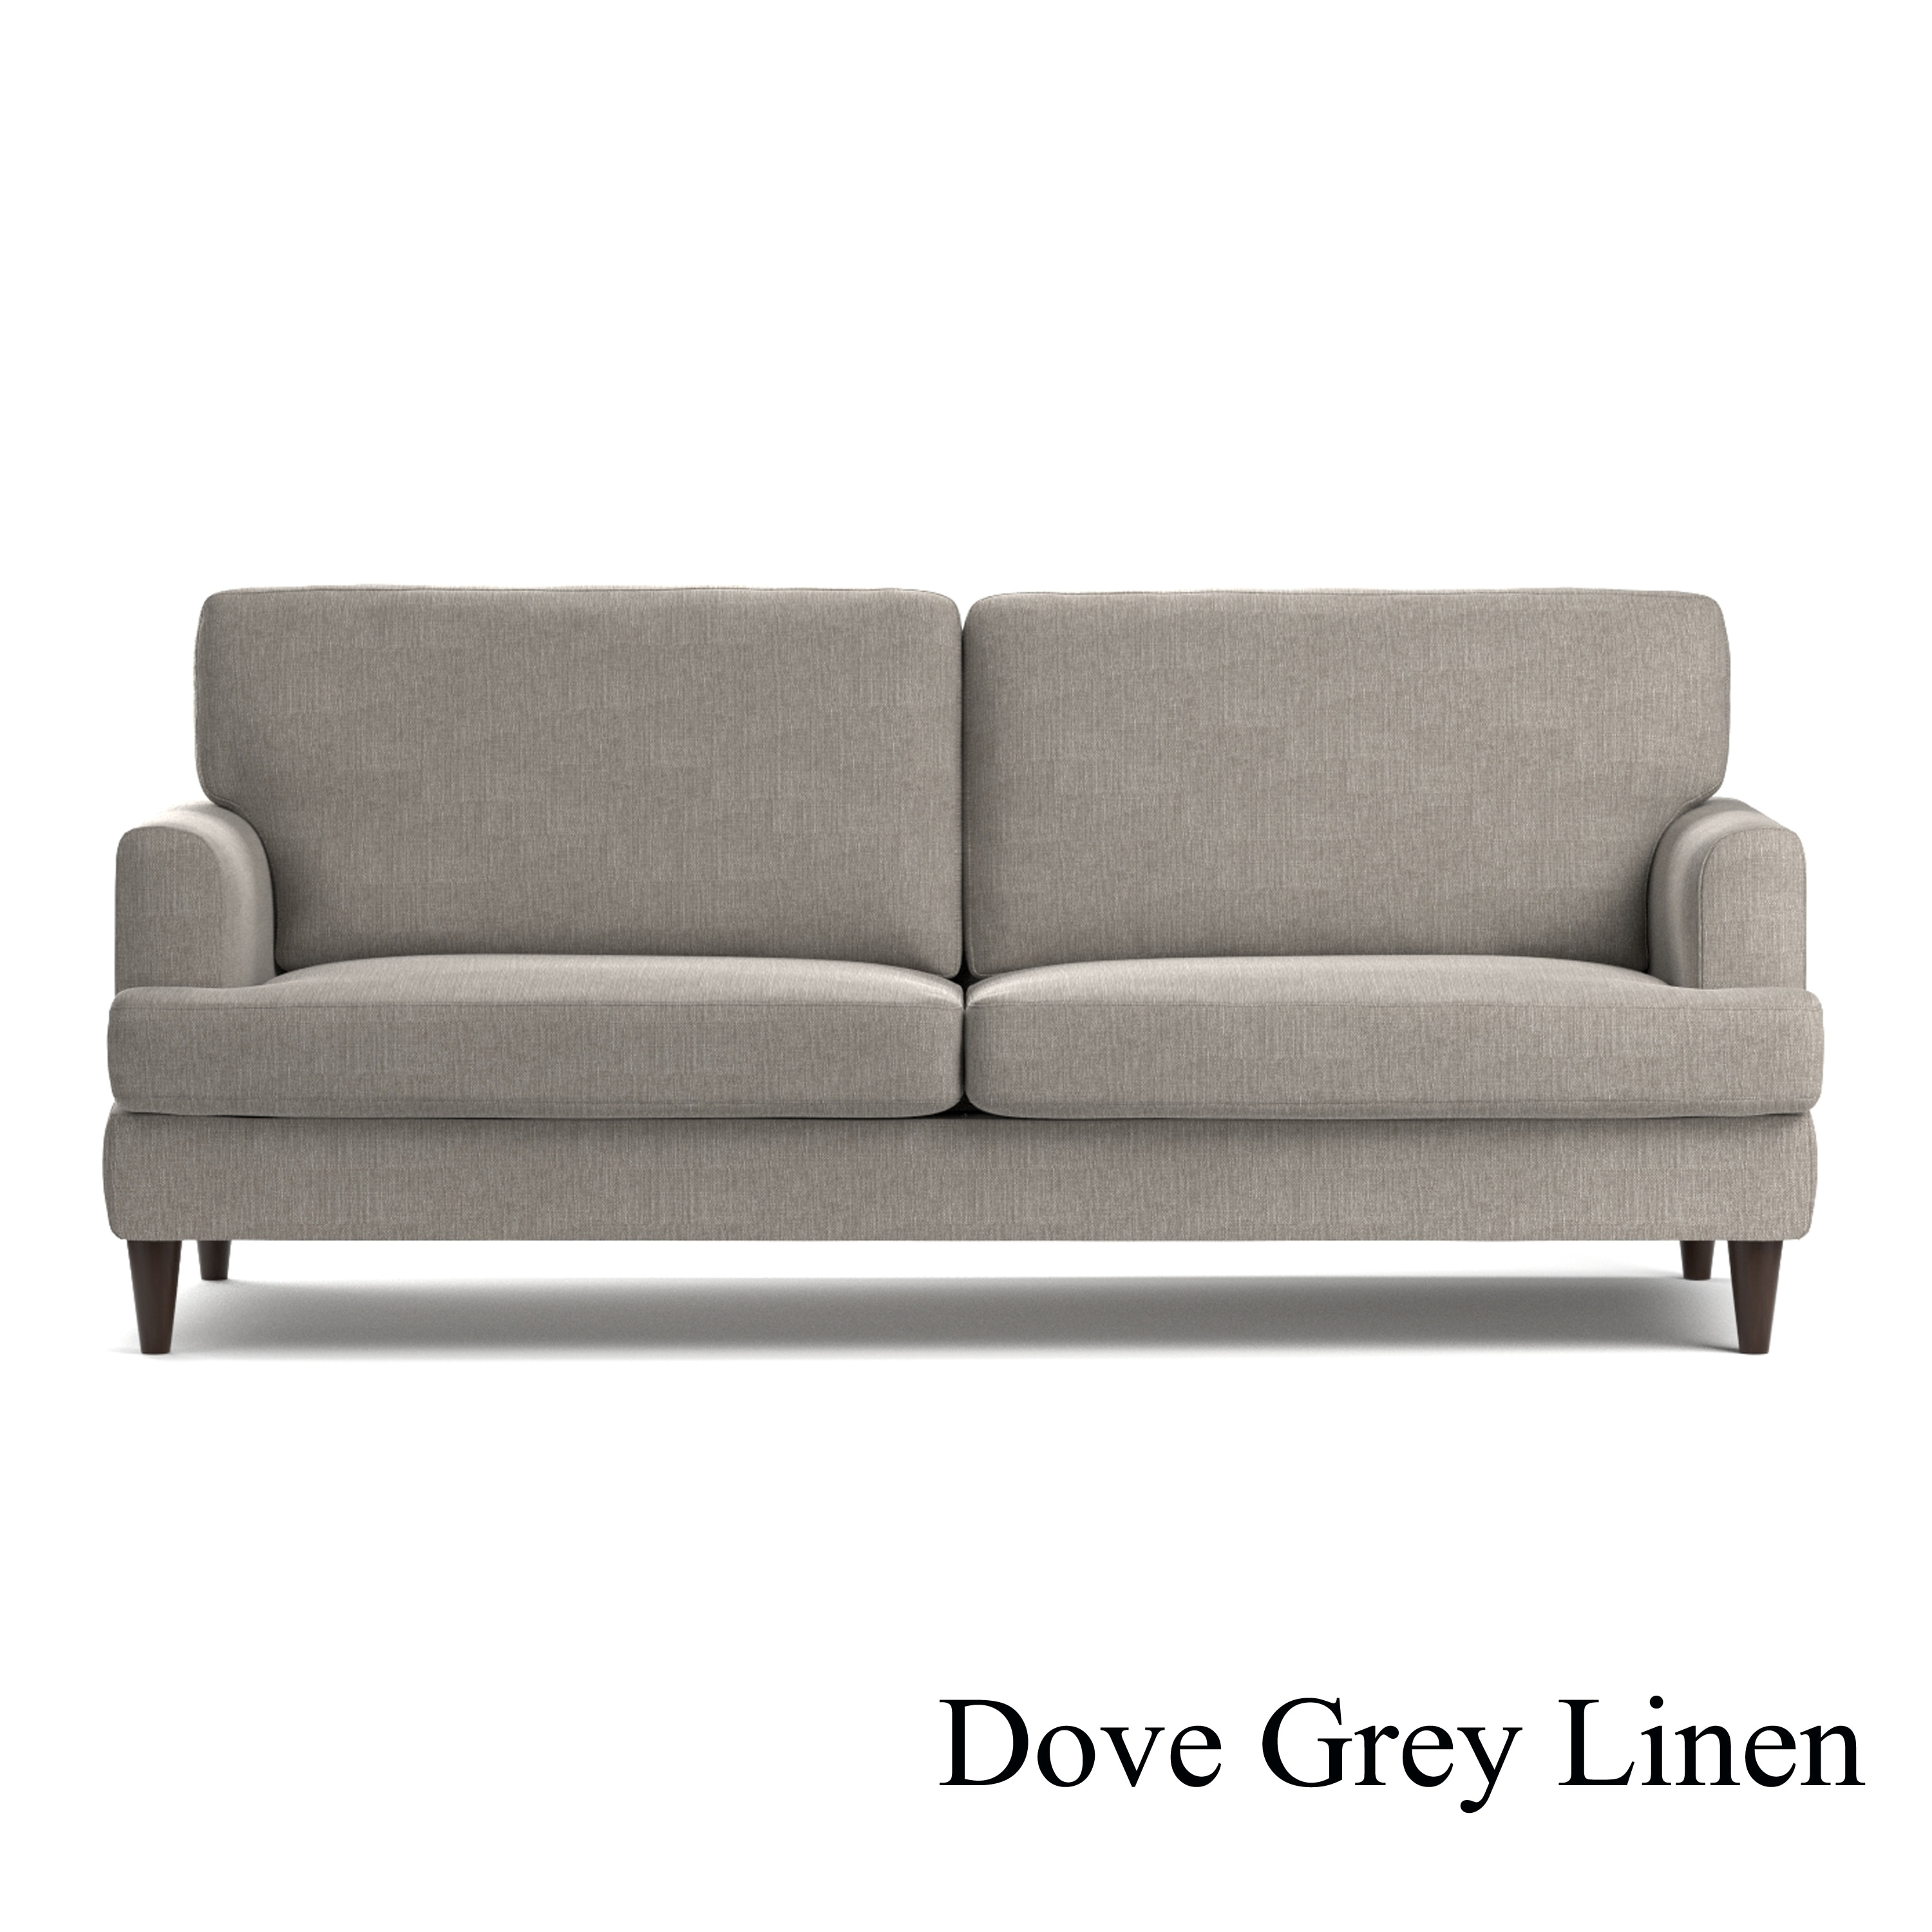 Handy Living Undercover Custom Orlando Sofast Sofa With Tailored Slipcover Free Shipping Today 12659580